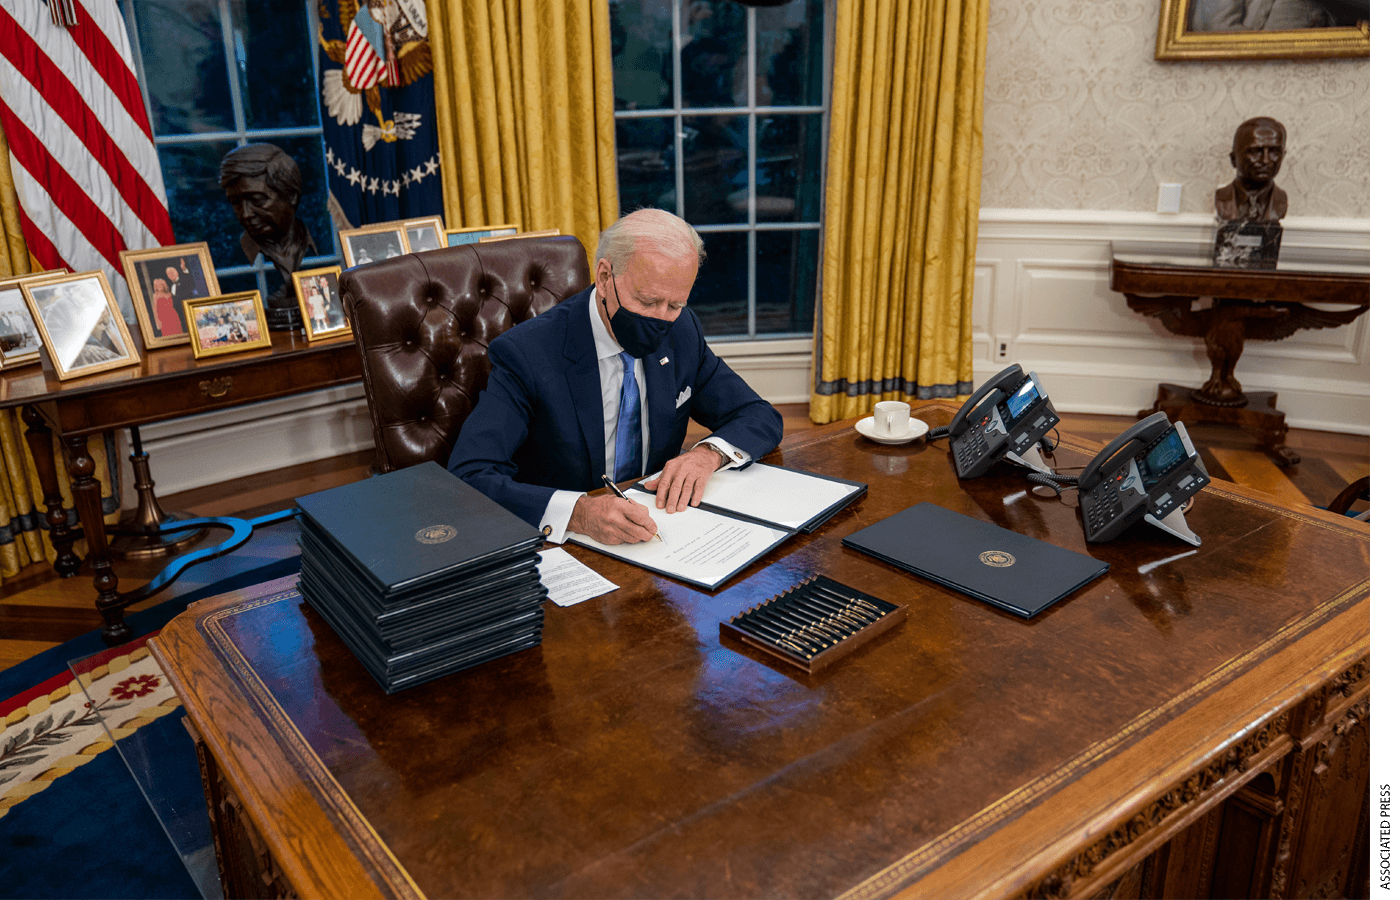 United States President Joe Biden signs executive order on Covid-19 during his first minutes in the Oval Office, Wednesday, Jan. 20, 2021.